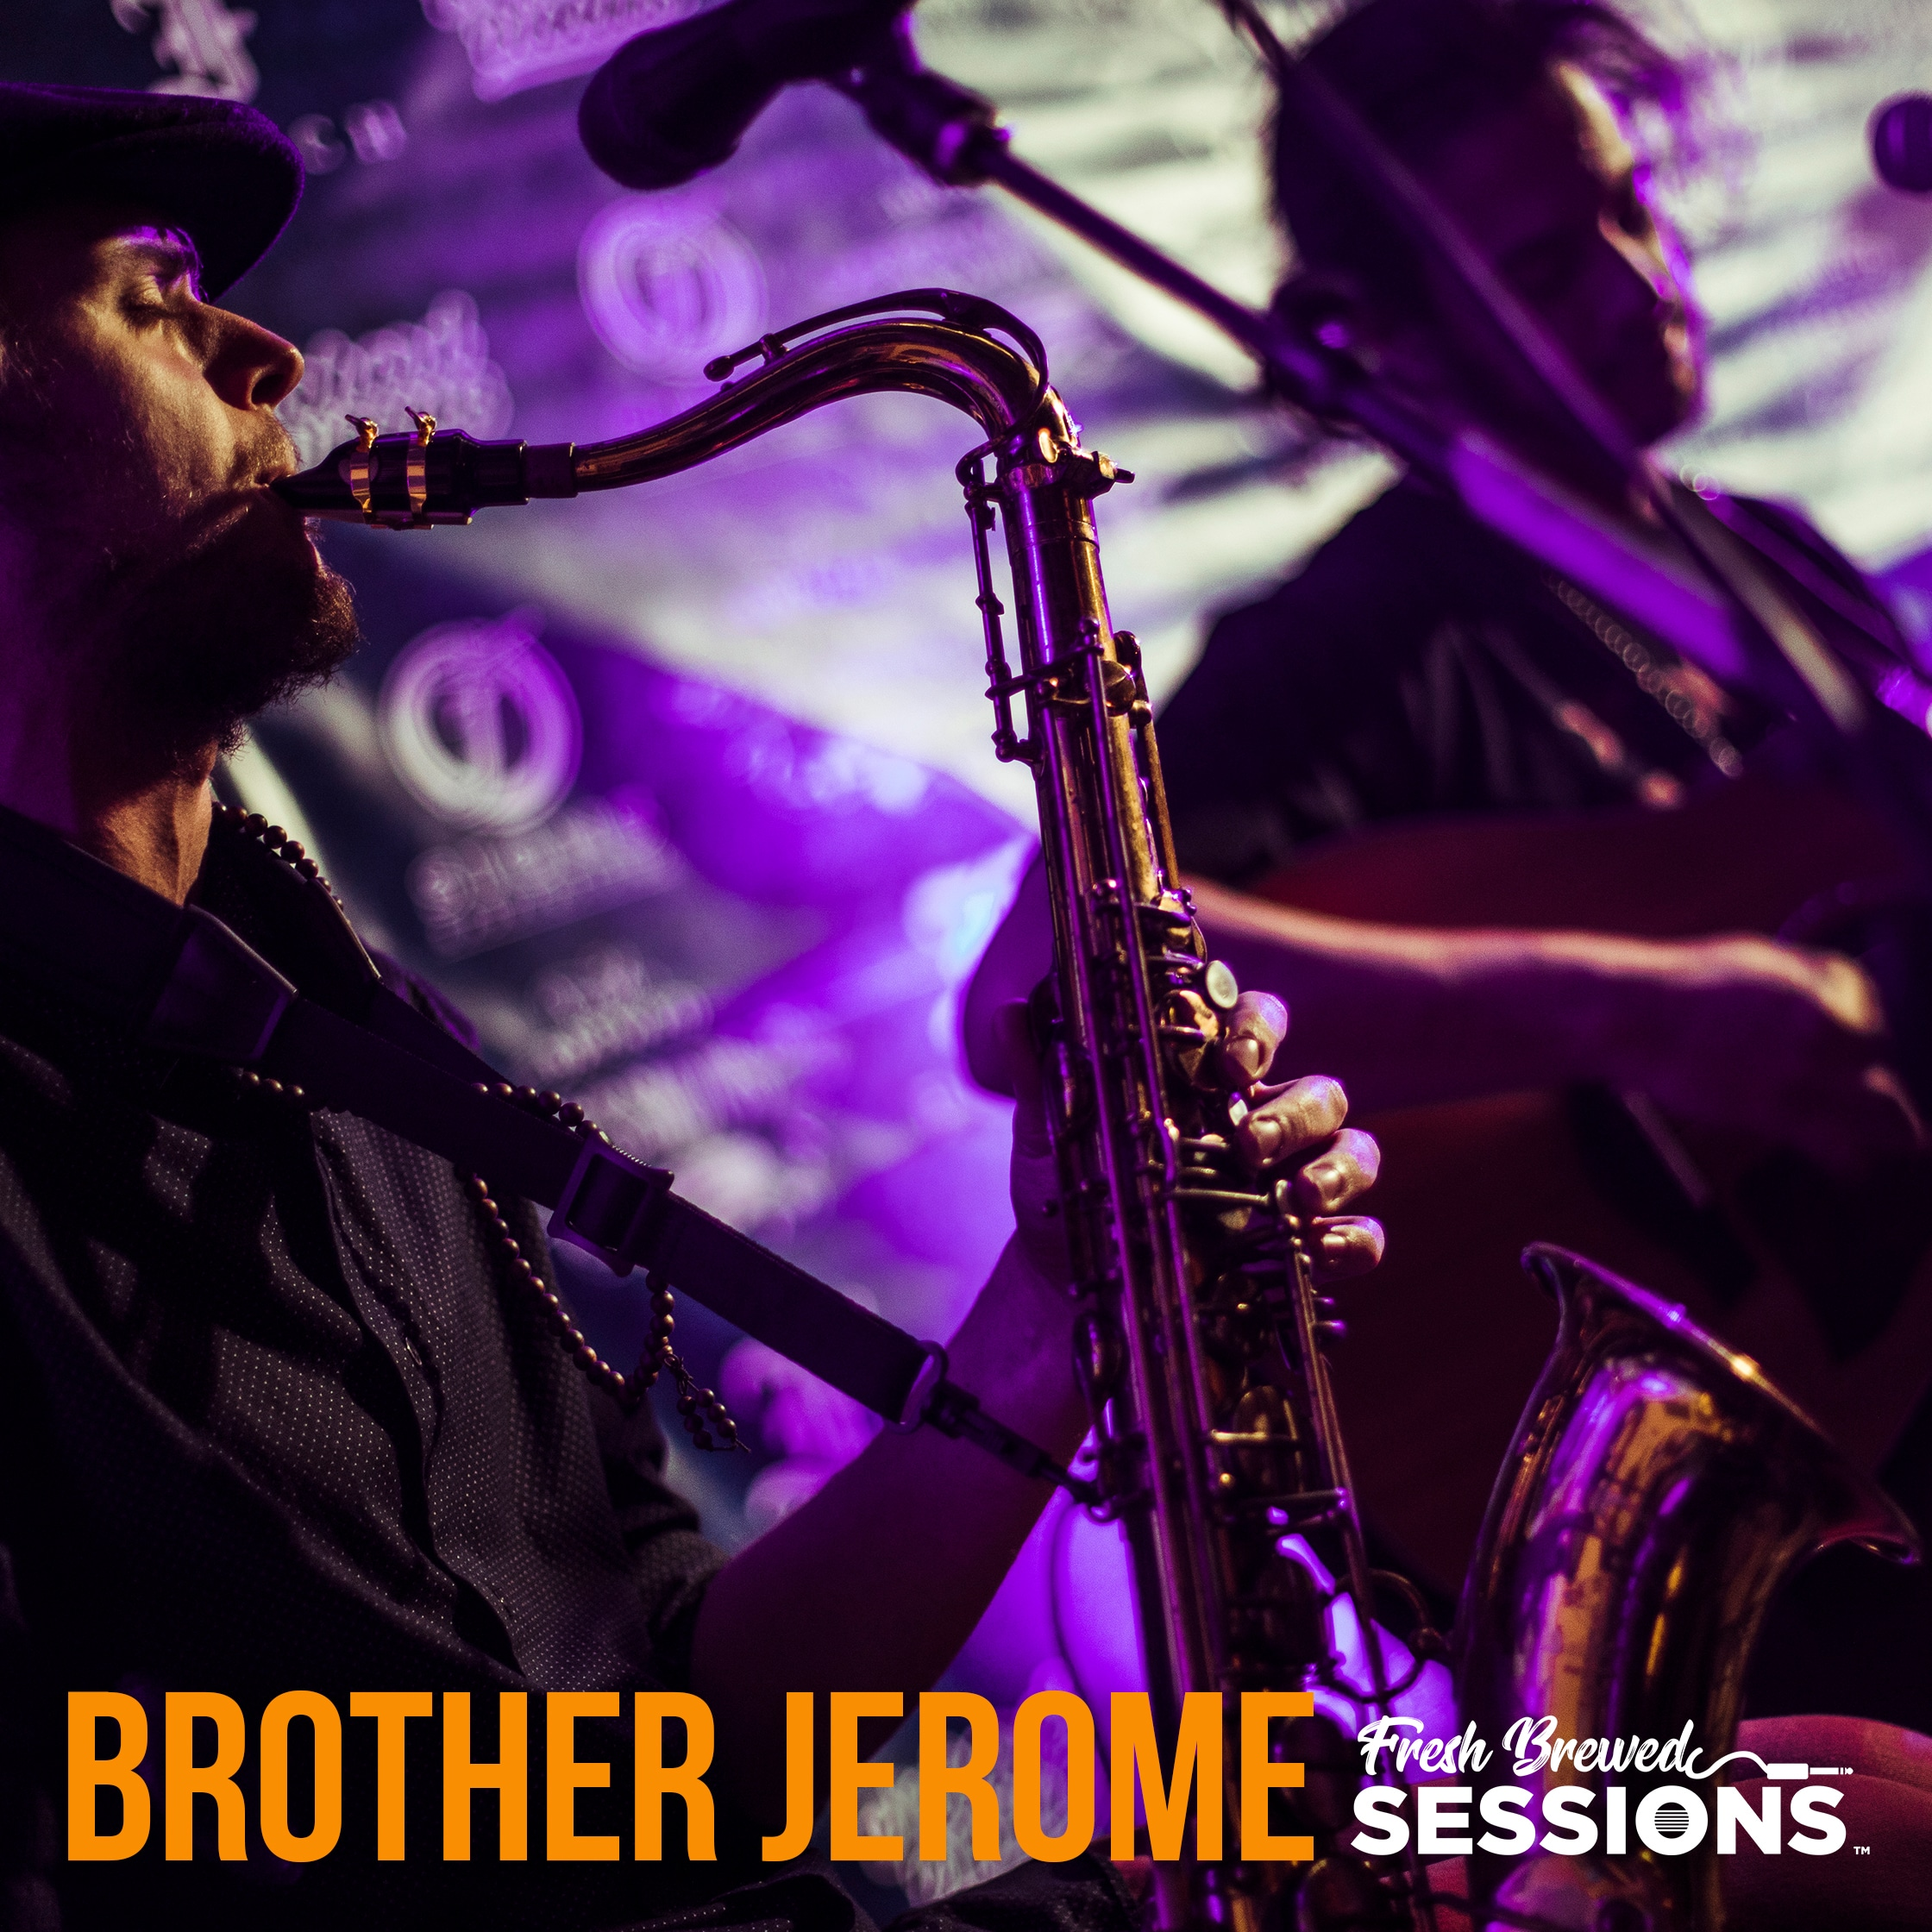 Fresh Brewed Sessions | Brother Jerome